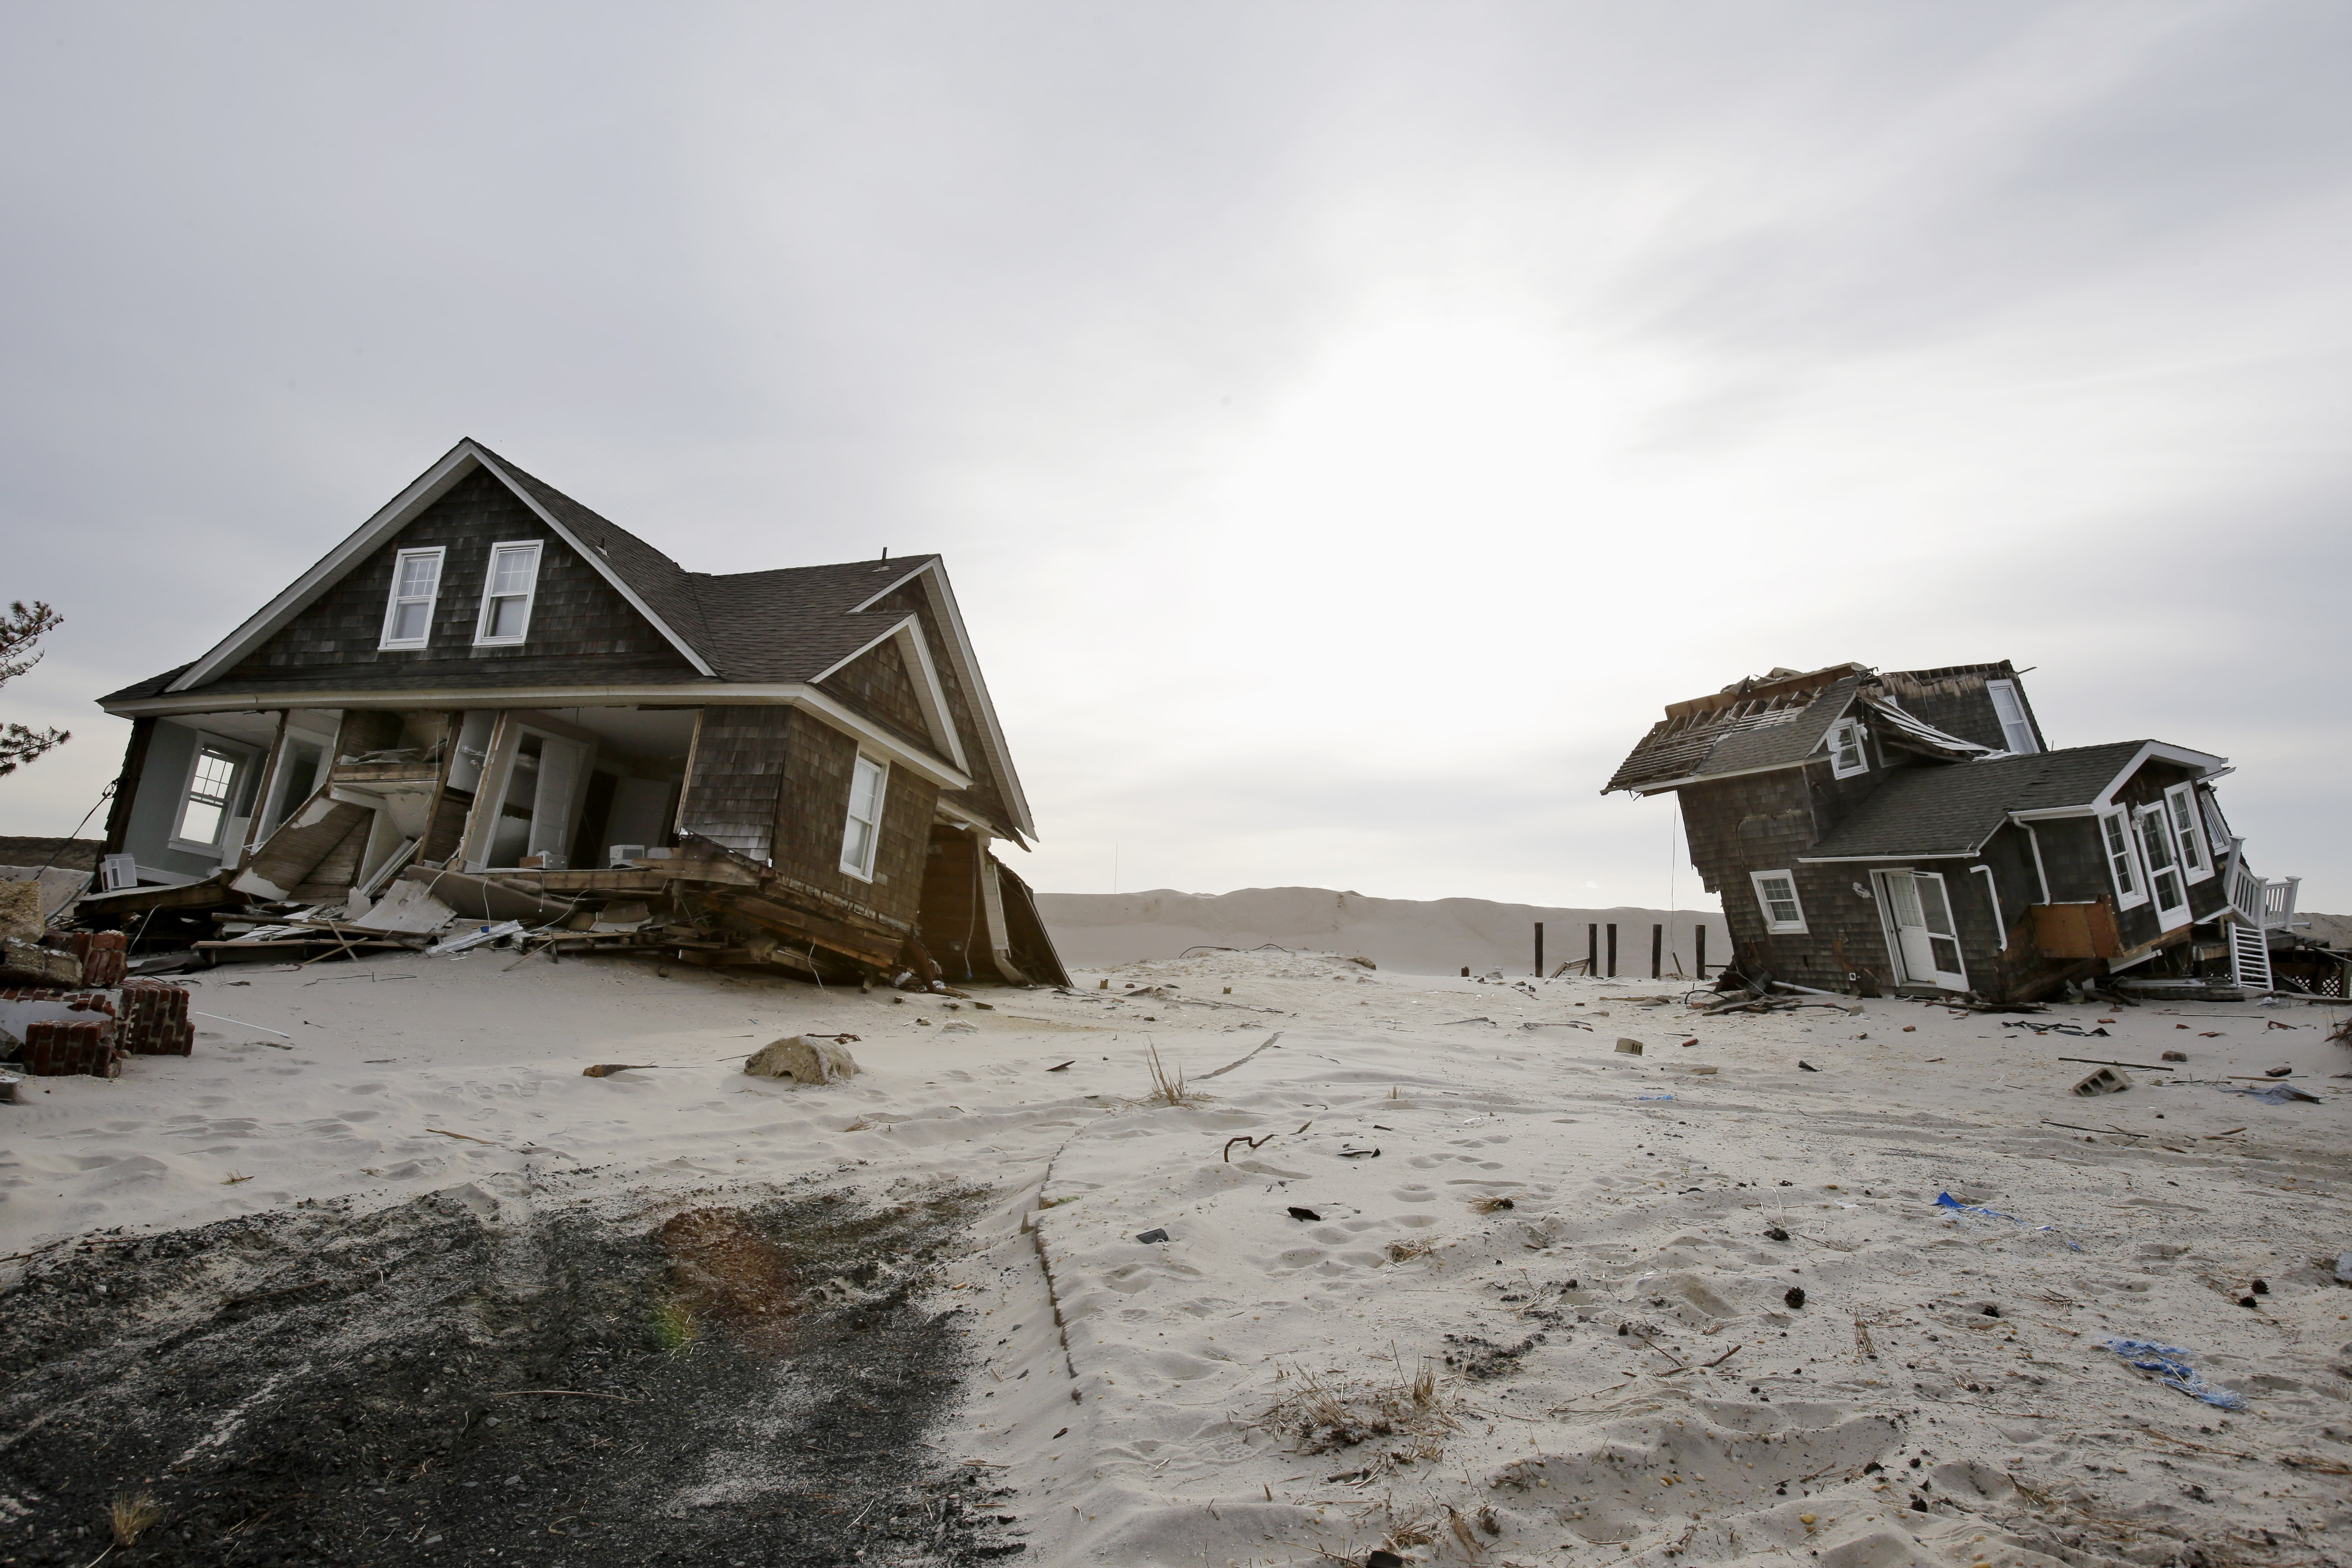 We cannot risk ignoring the effects of climate change, which scientists say will increase the likelihood of devastating storms like Hurricane Sandy. (AP file photo)